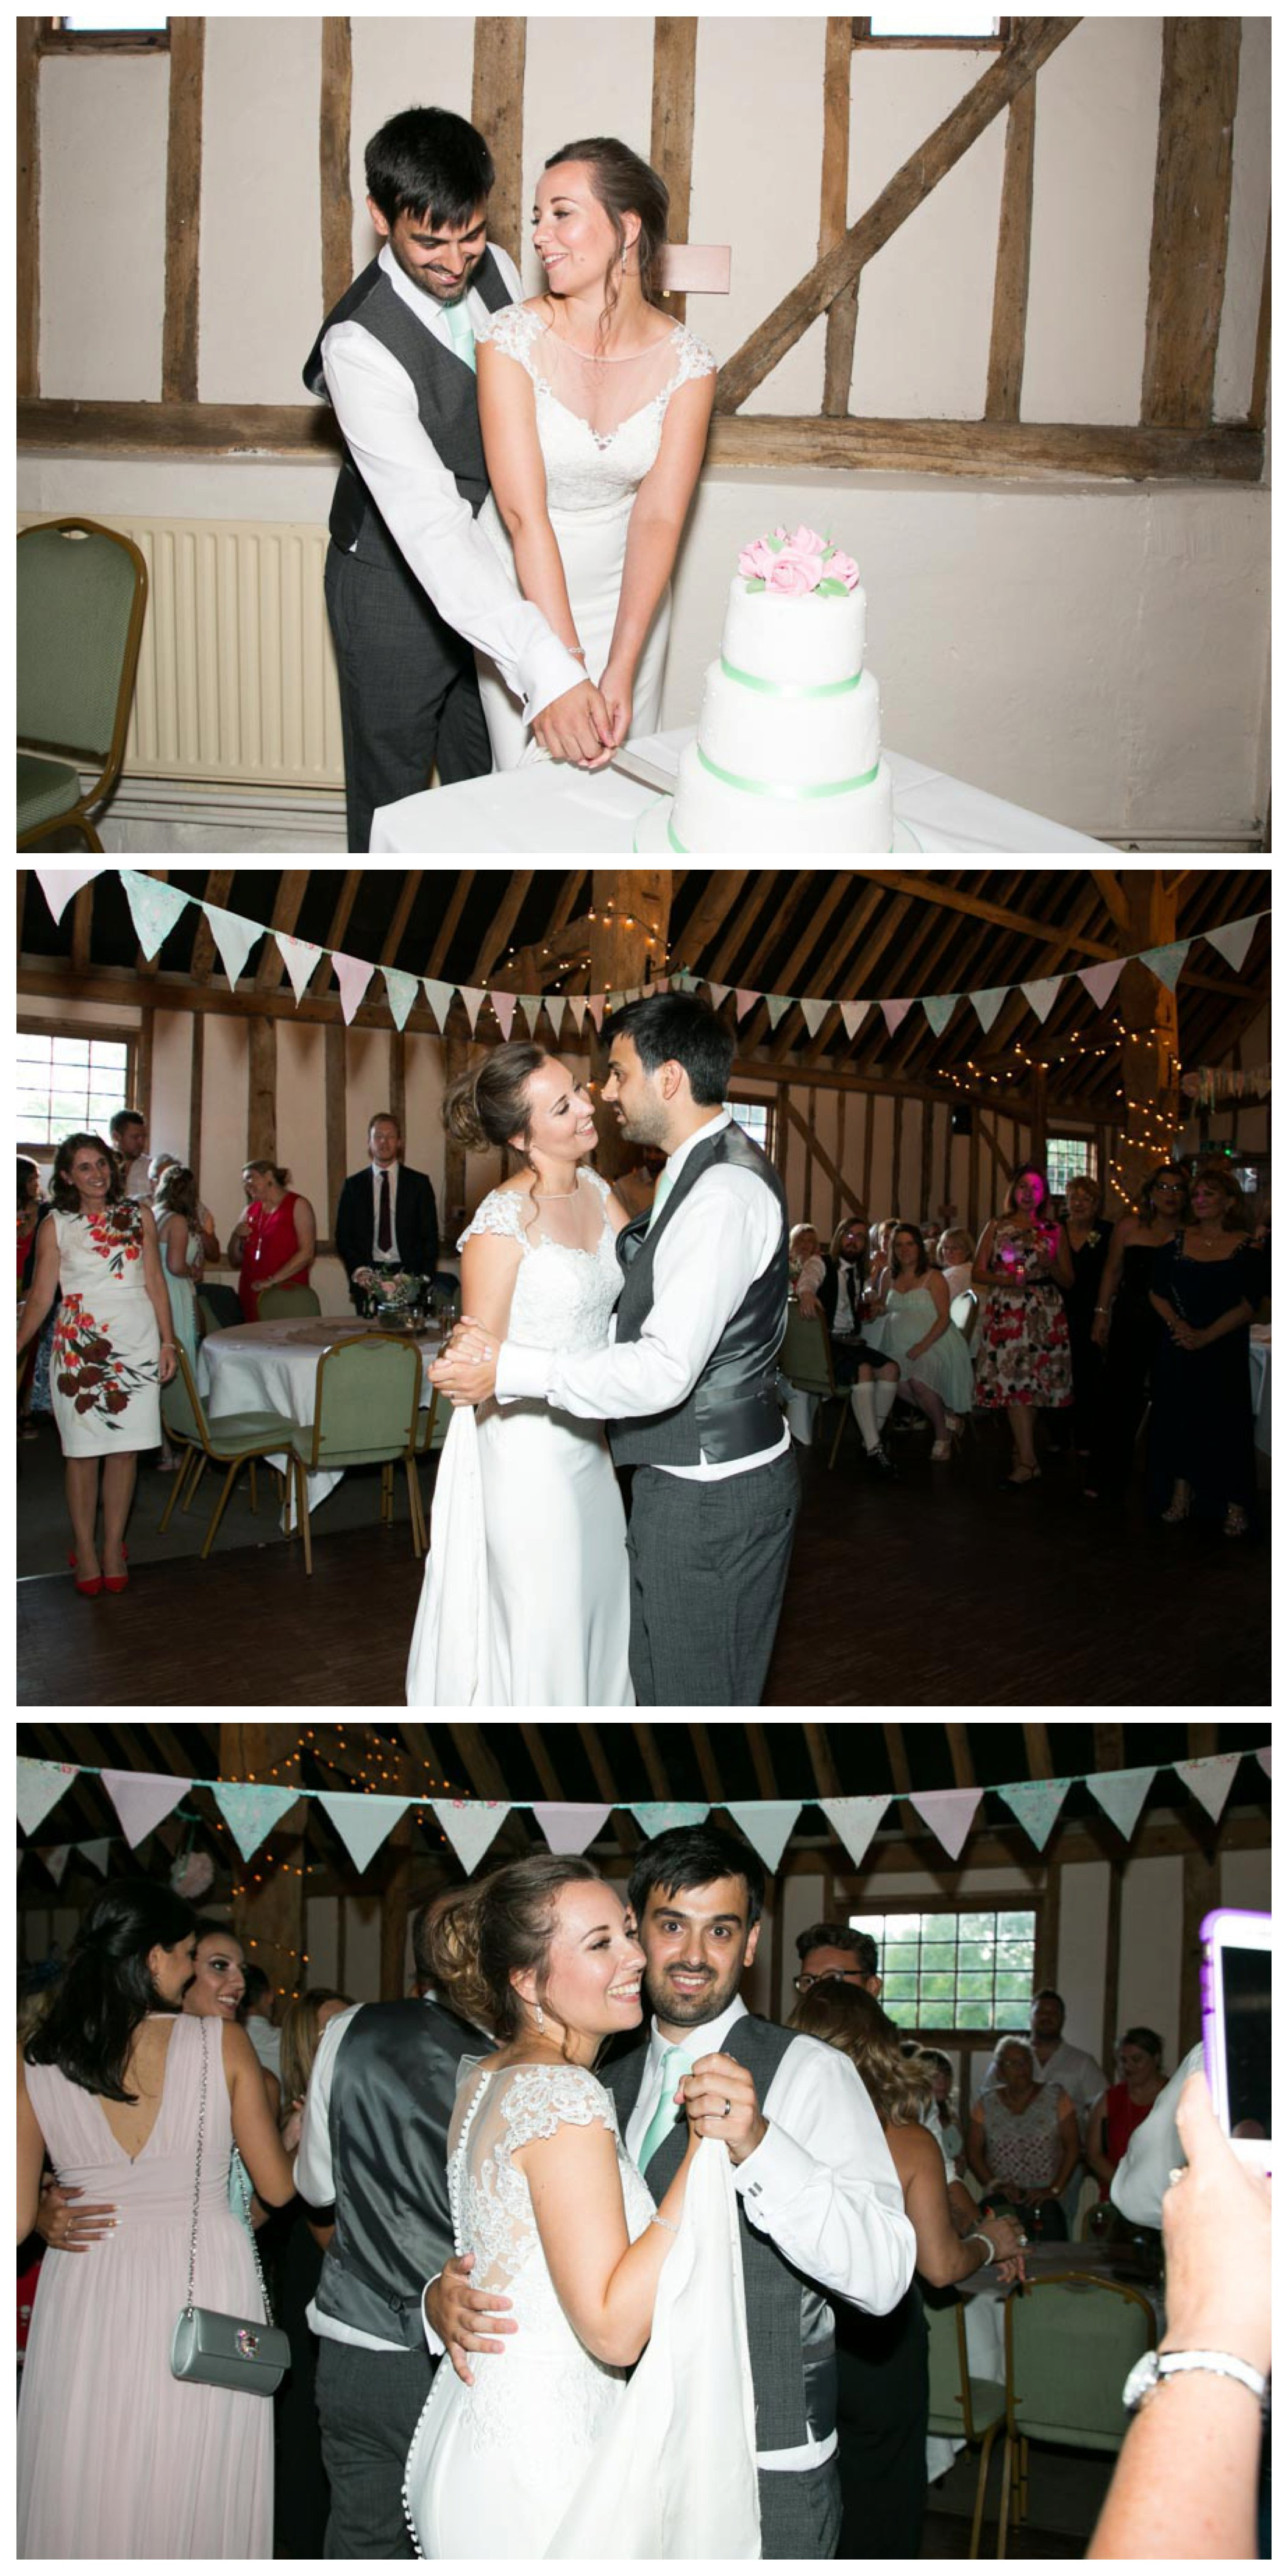 bride and groom cutting cake and having first dance at Pledgdon Barn wedding